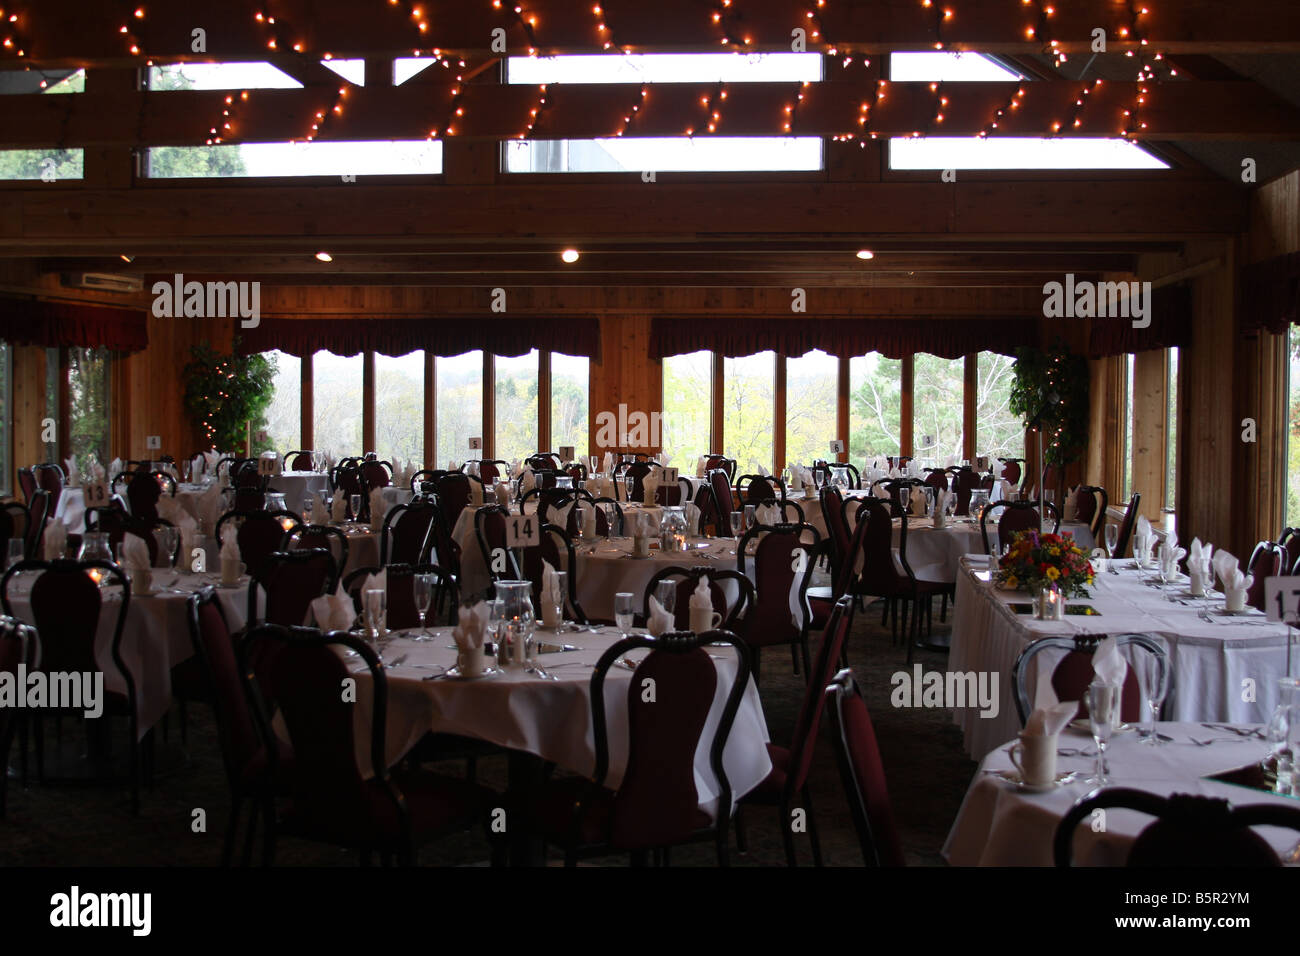 A wedding reception hall set up for a dinner later when the guests arrive to celebrate a wedding ceremony - Stock Image